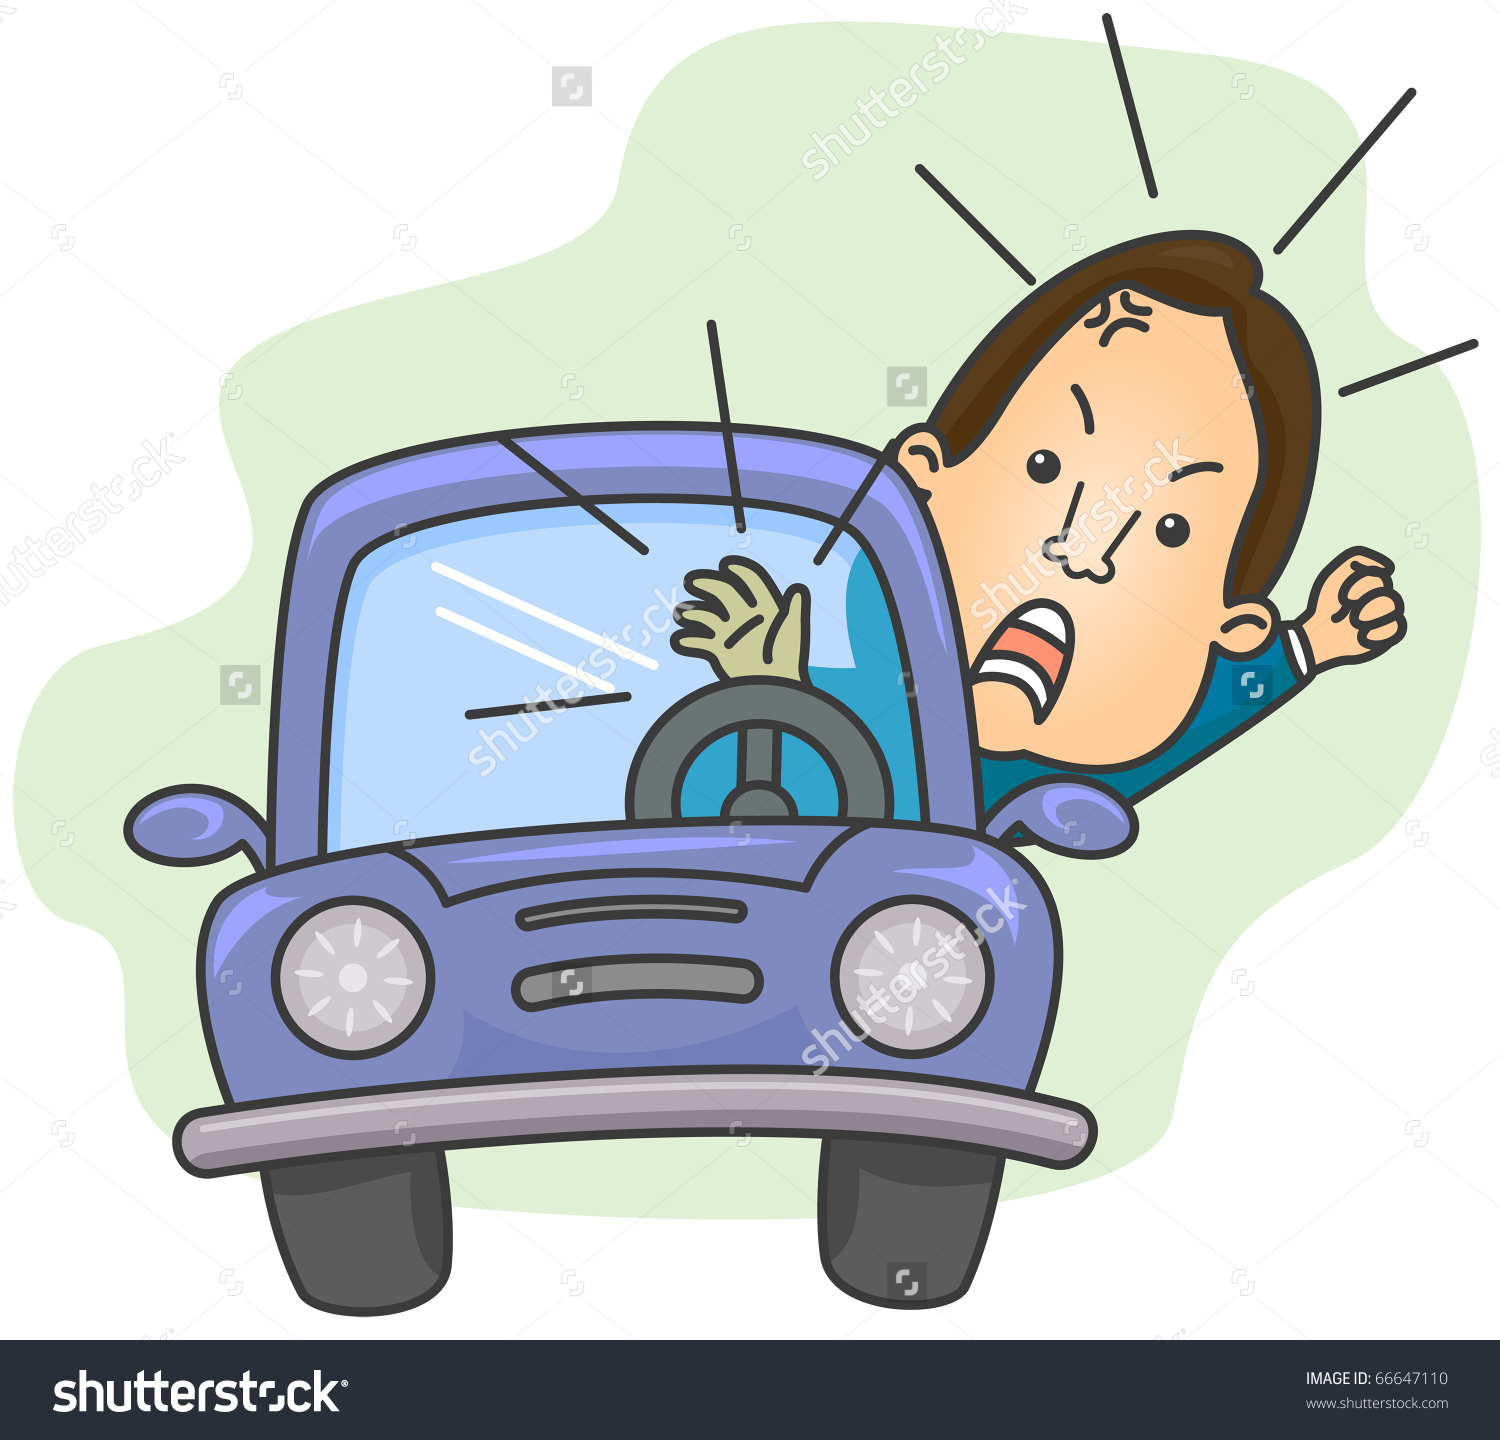 Jumping At The Sound Of A Car Horn Clipart.